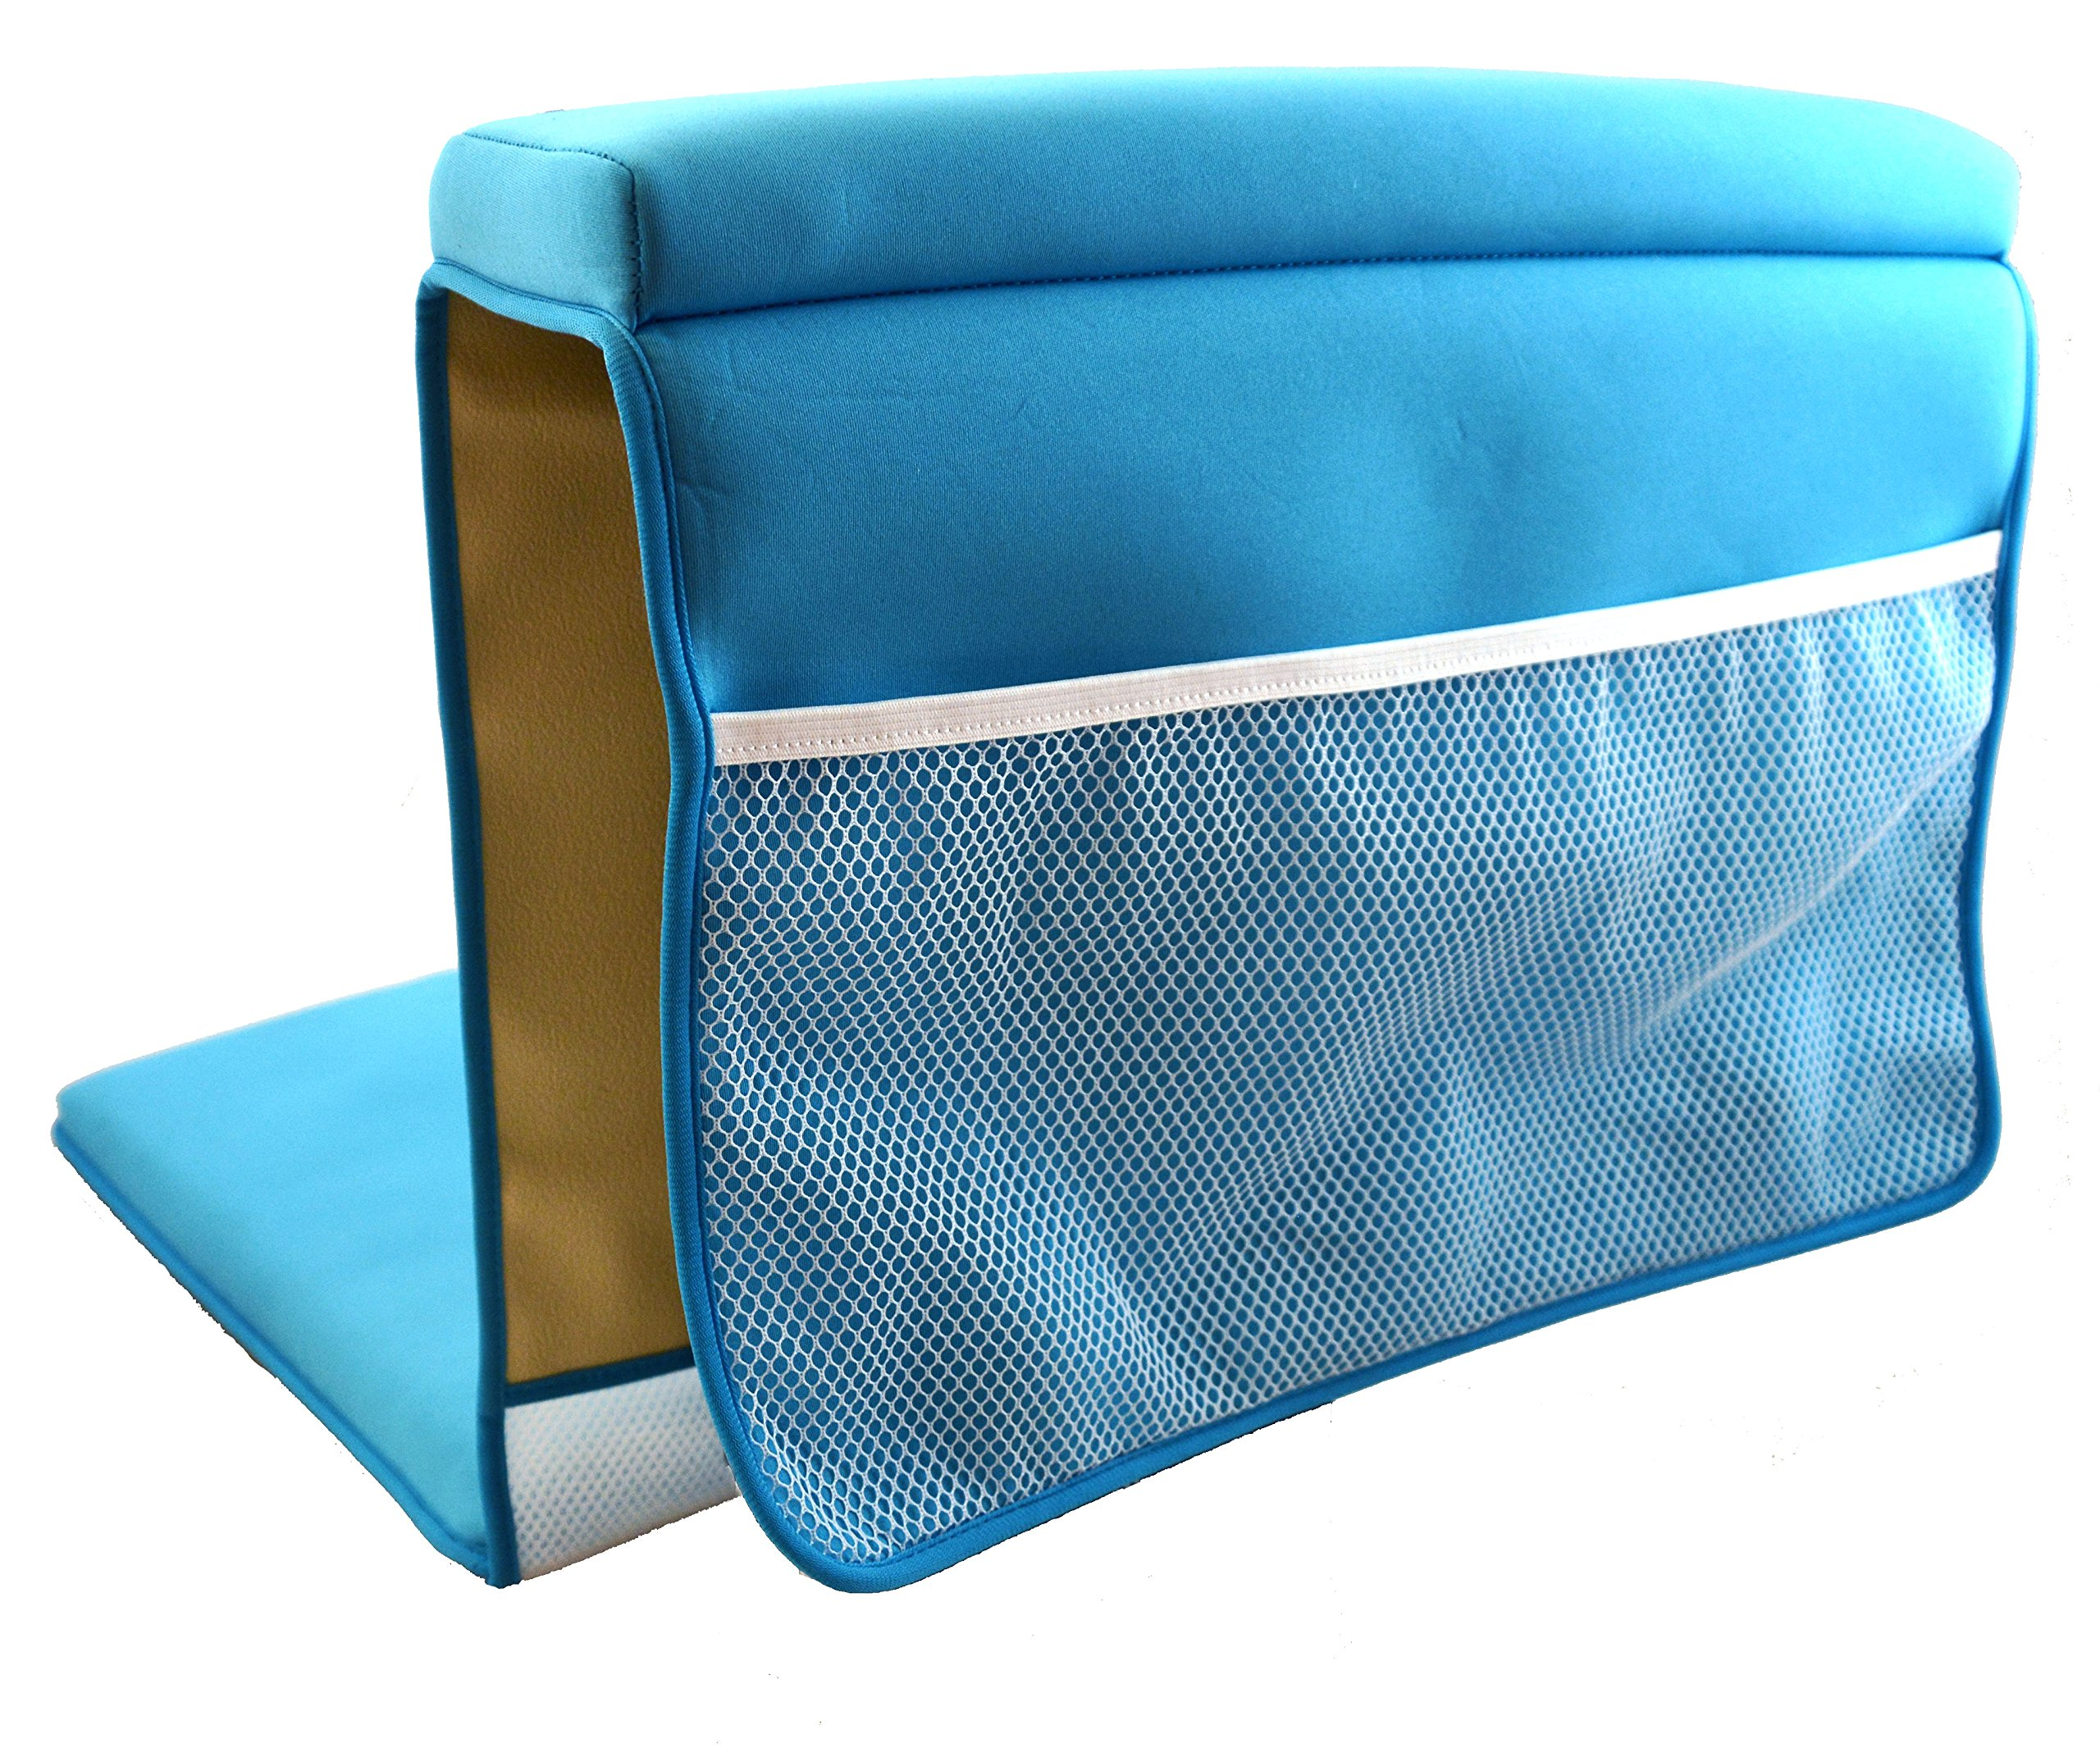 Life Upgrade Bath Kneeler in Blue - Padded Knee and Elbow Baby Bath Tub Cushion Mat with Pockets by Life Upgrade (Image #5)